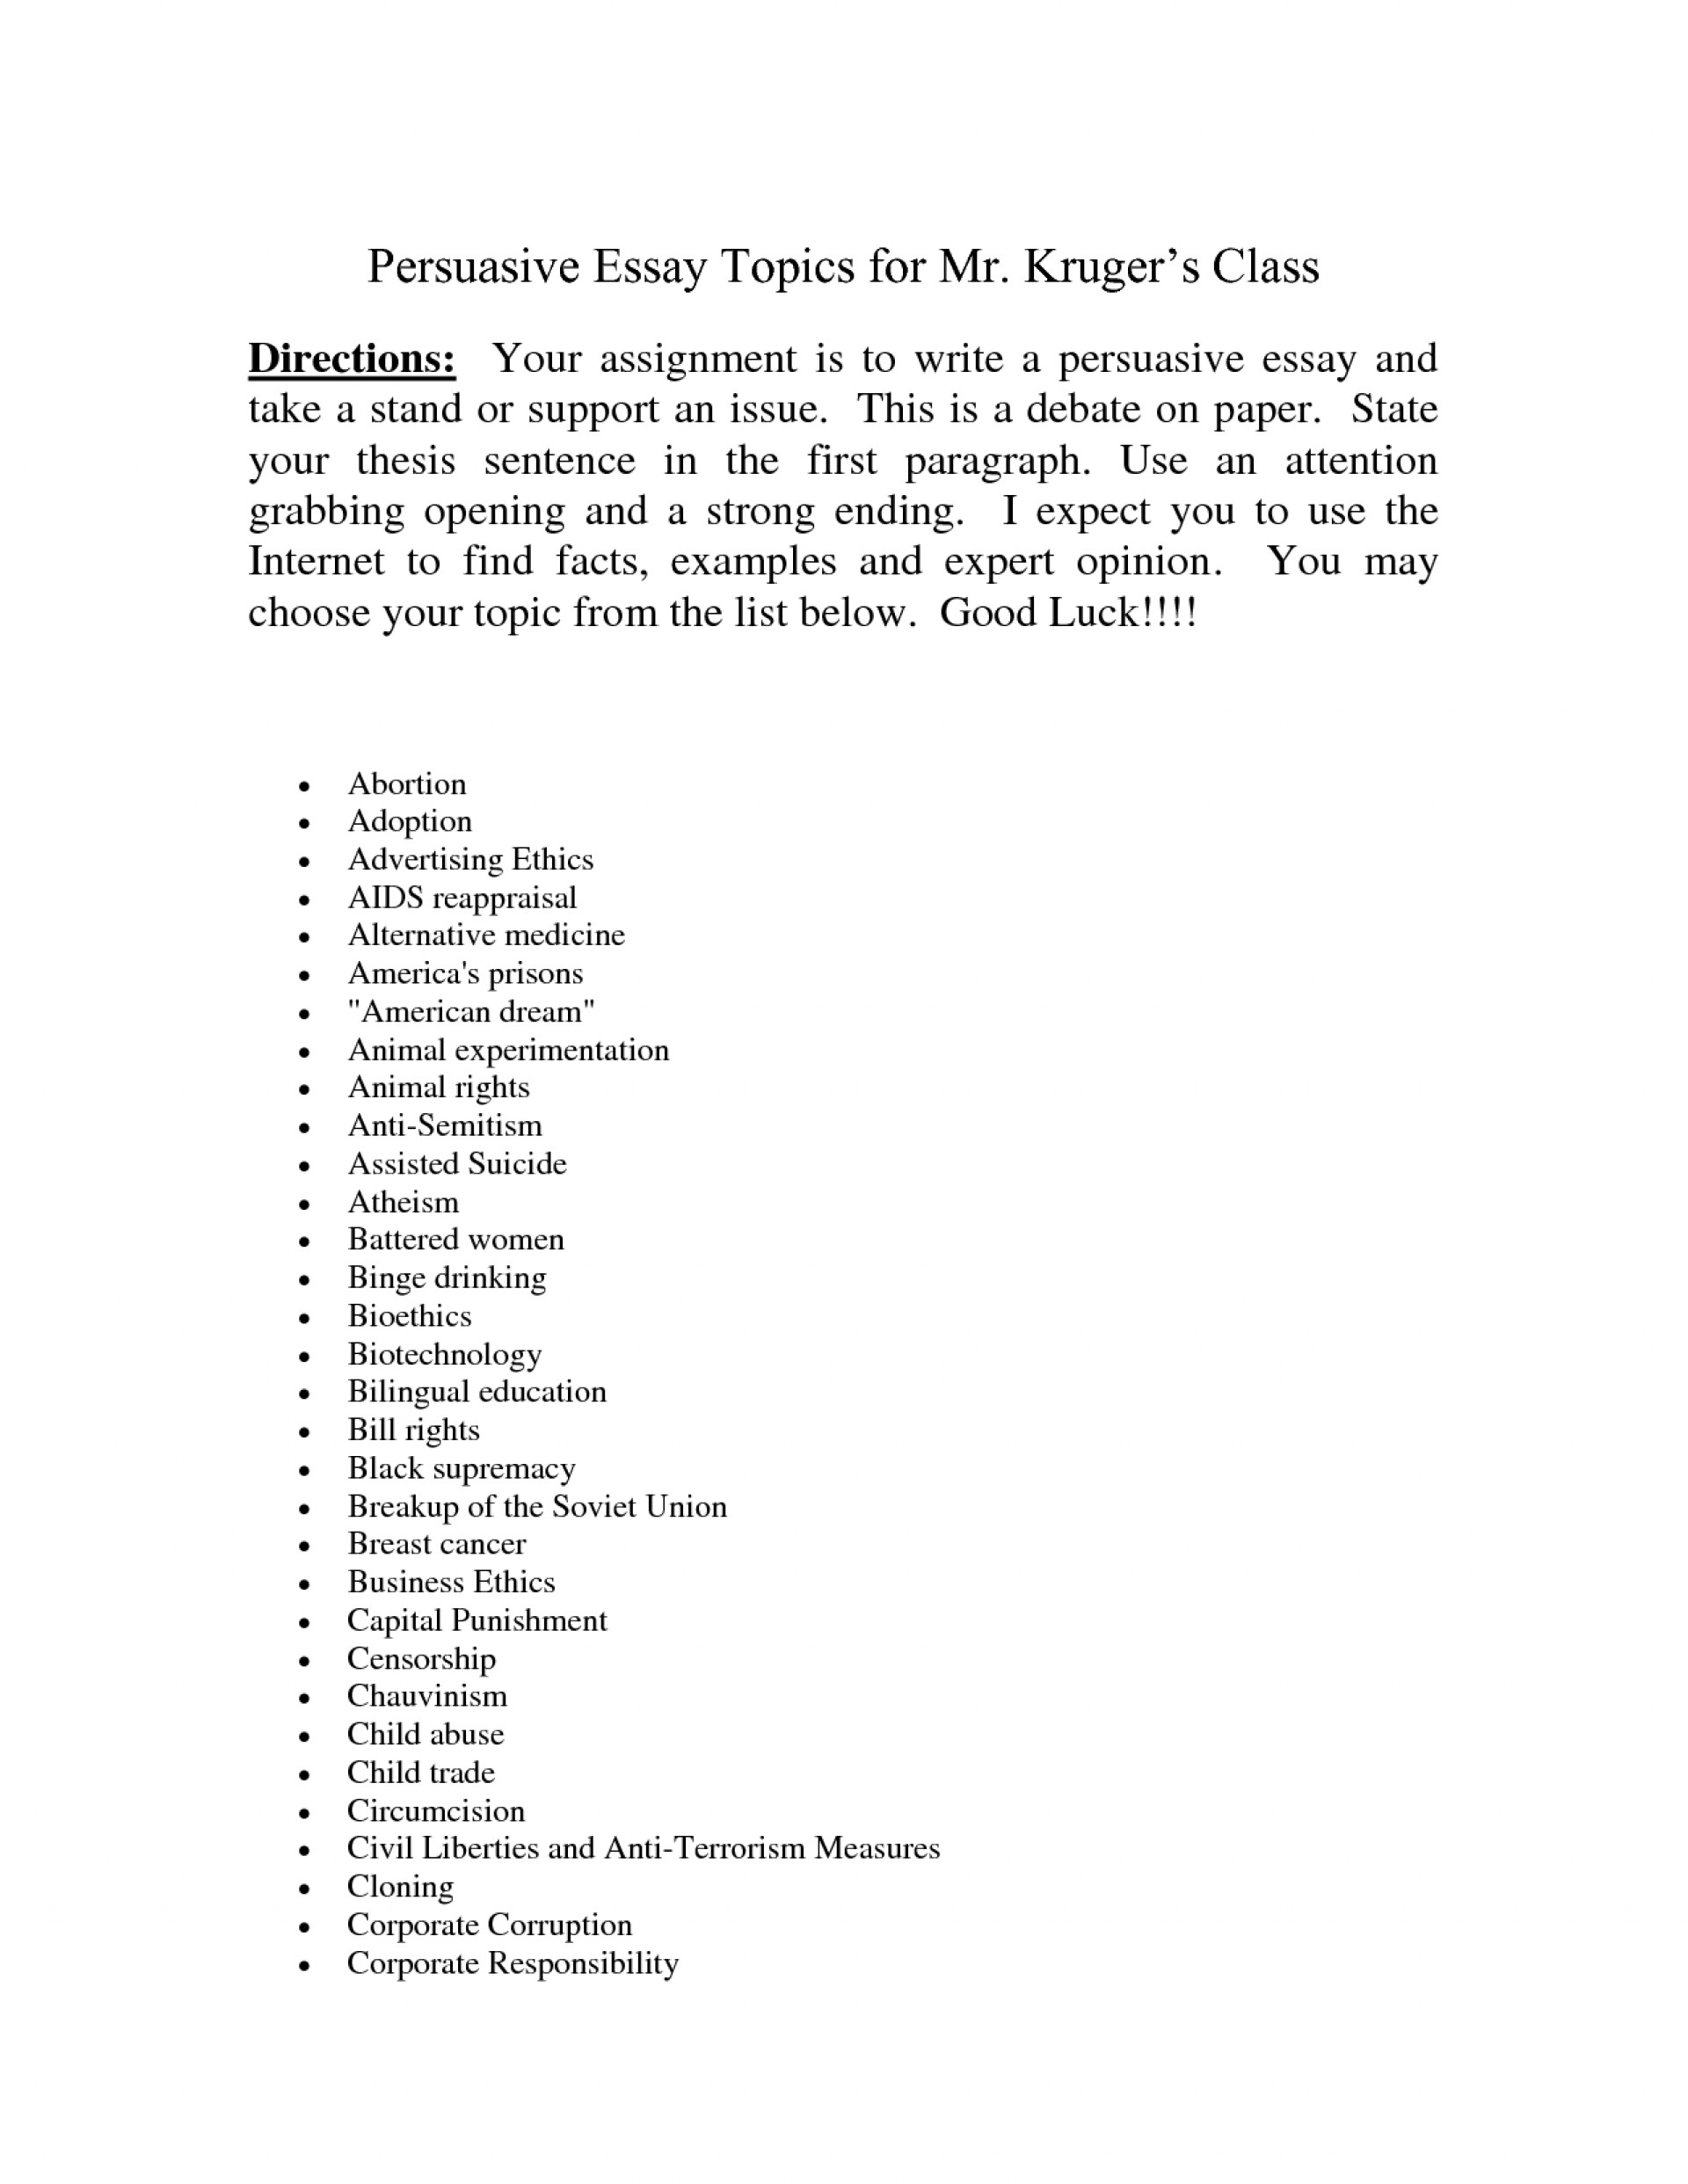 013 Argument Essay Student Samples Corporation Term Paper Writing List Of Argumentativepersuasive Topics Awesome Collection Strong Argumentative Best Topic Great College Good Research Gatsby Beautiful Persuasive Uk For 1920